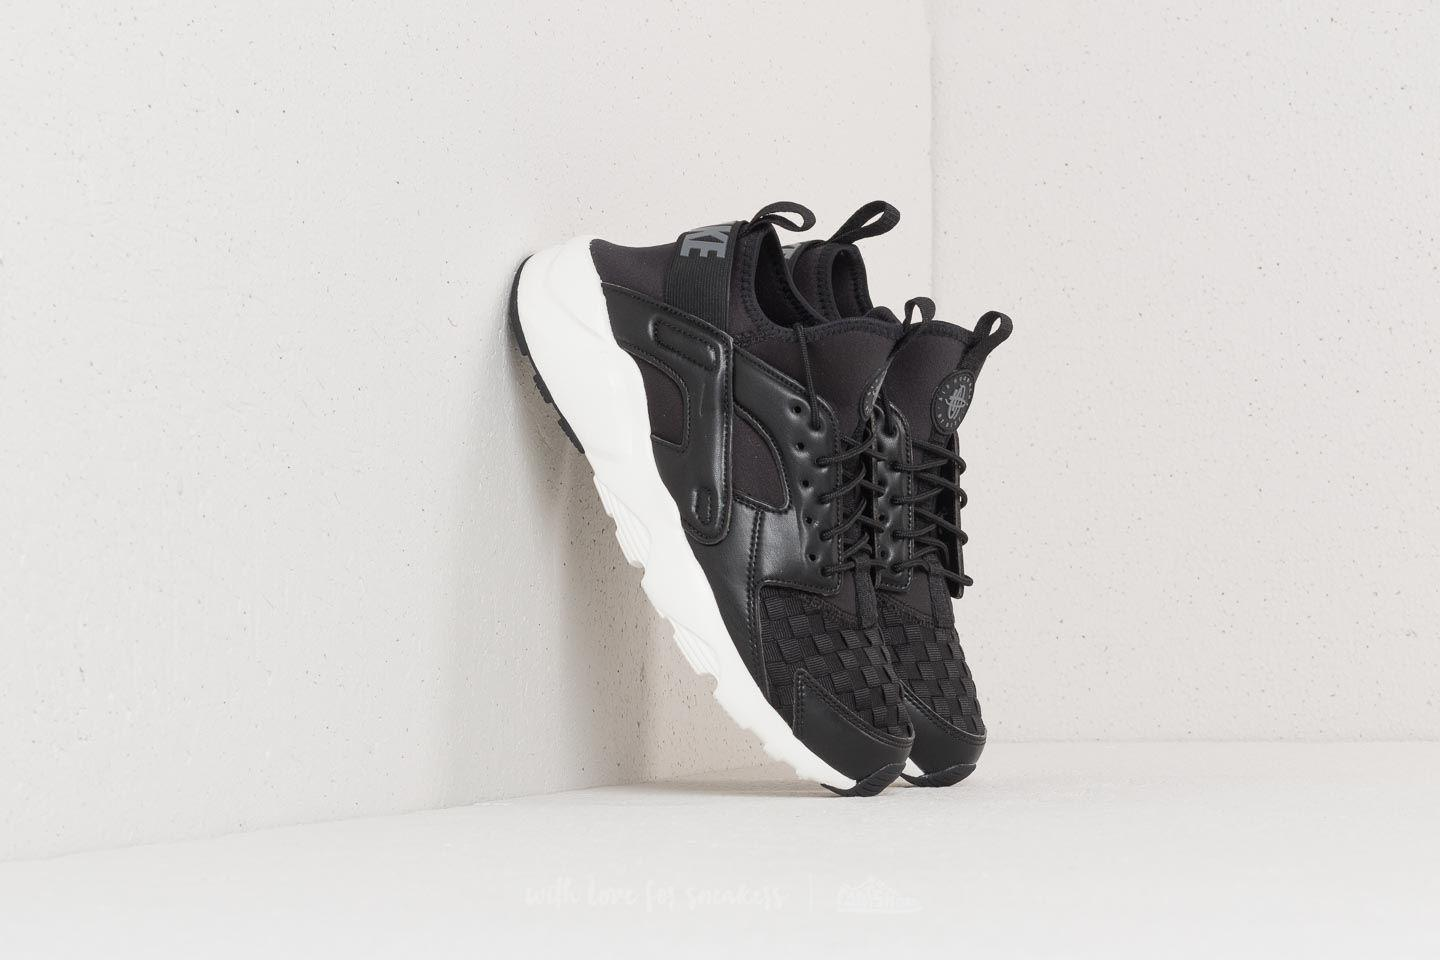 Lyst - Nike Air Huarache Run Ultra Se Black  Dark Grey  Sail-black ... b9506b7b7